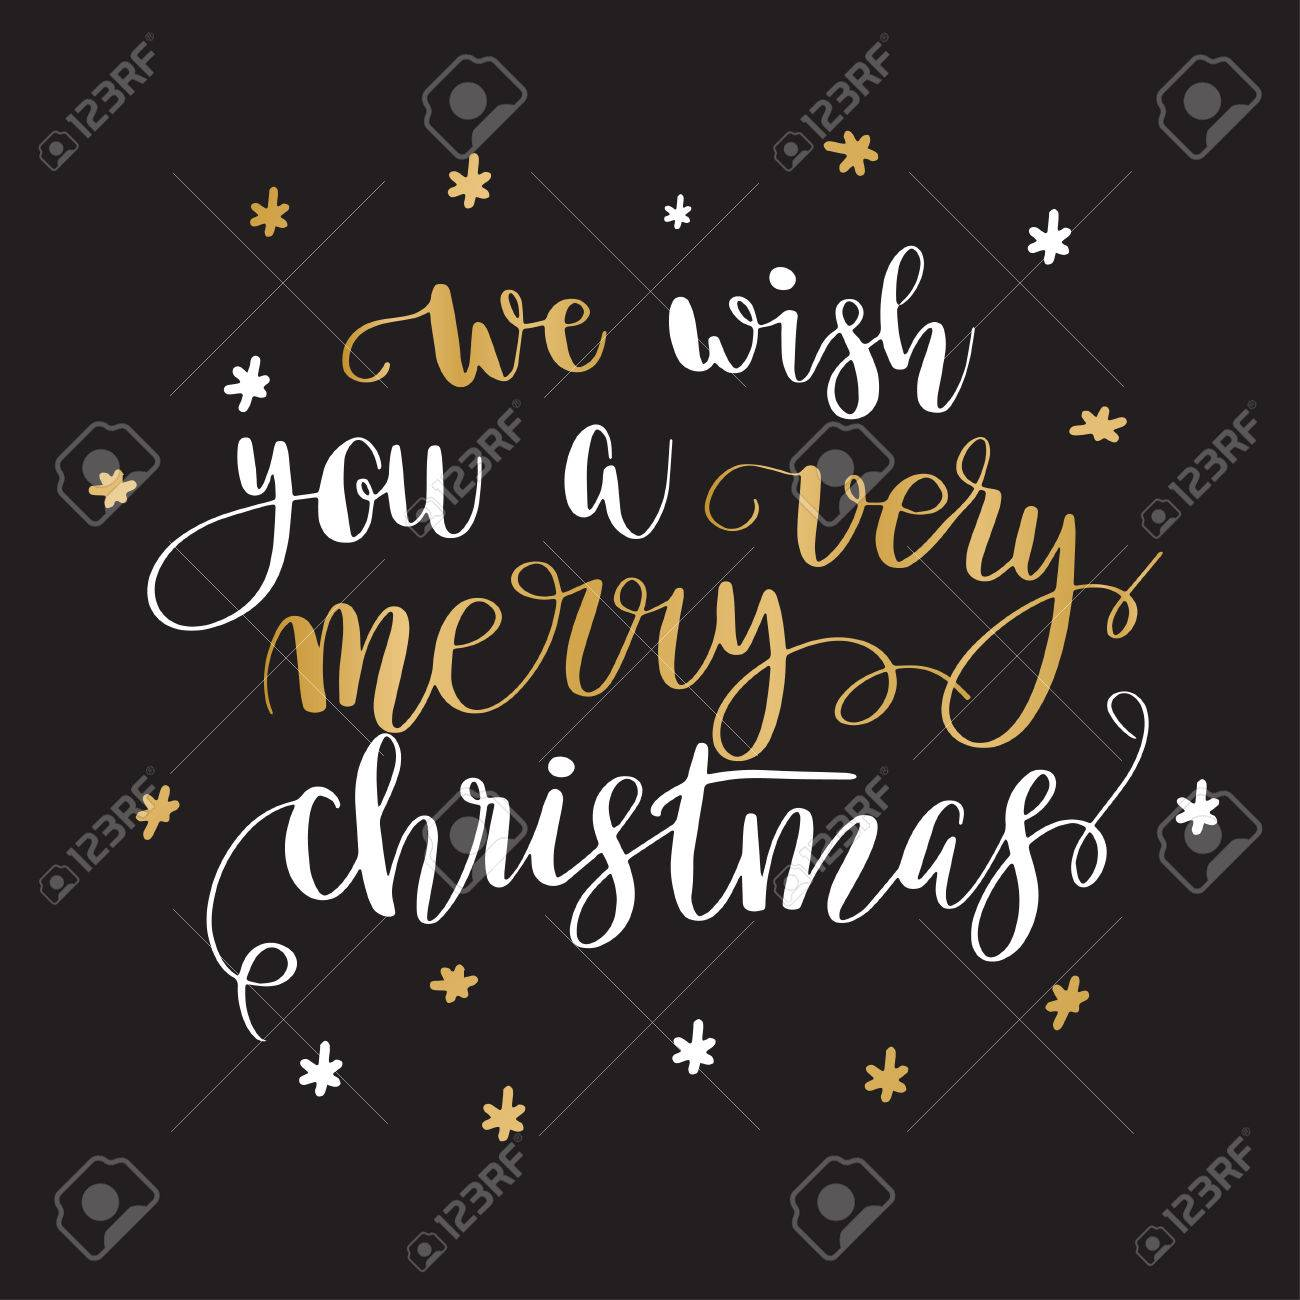 We Wish You A Very Merry Christmas Christmas Greeting Card With